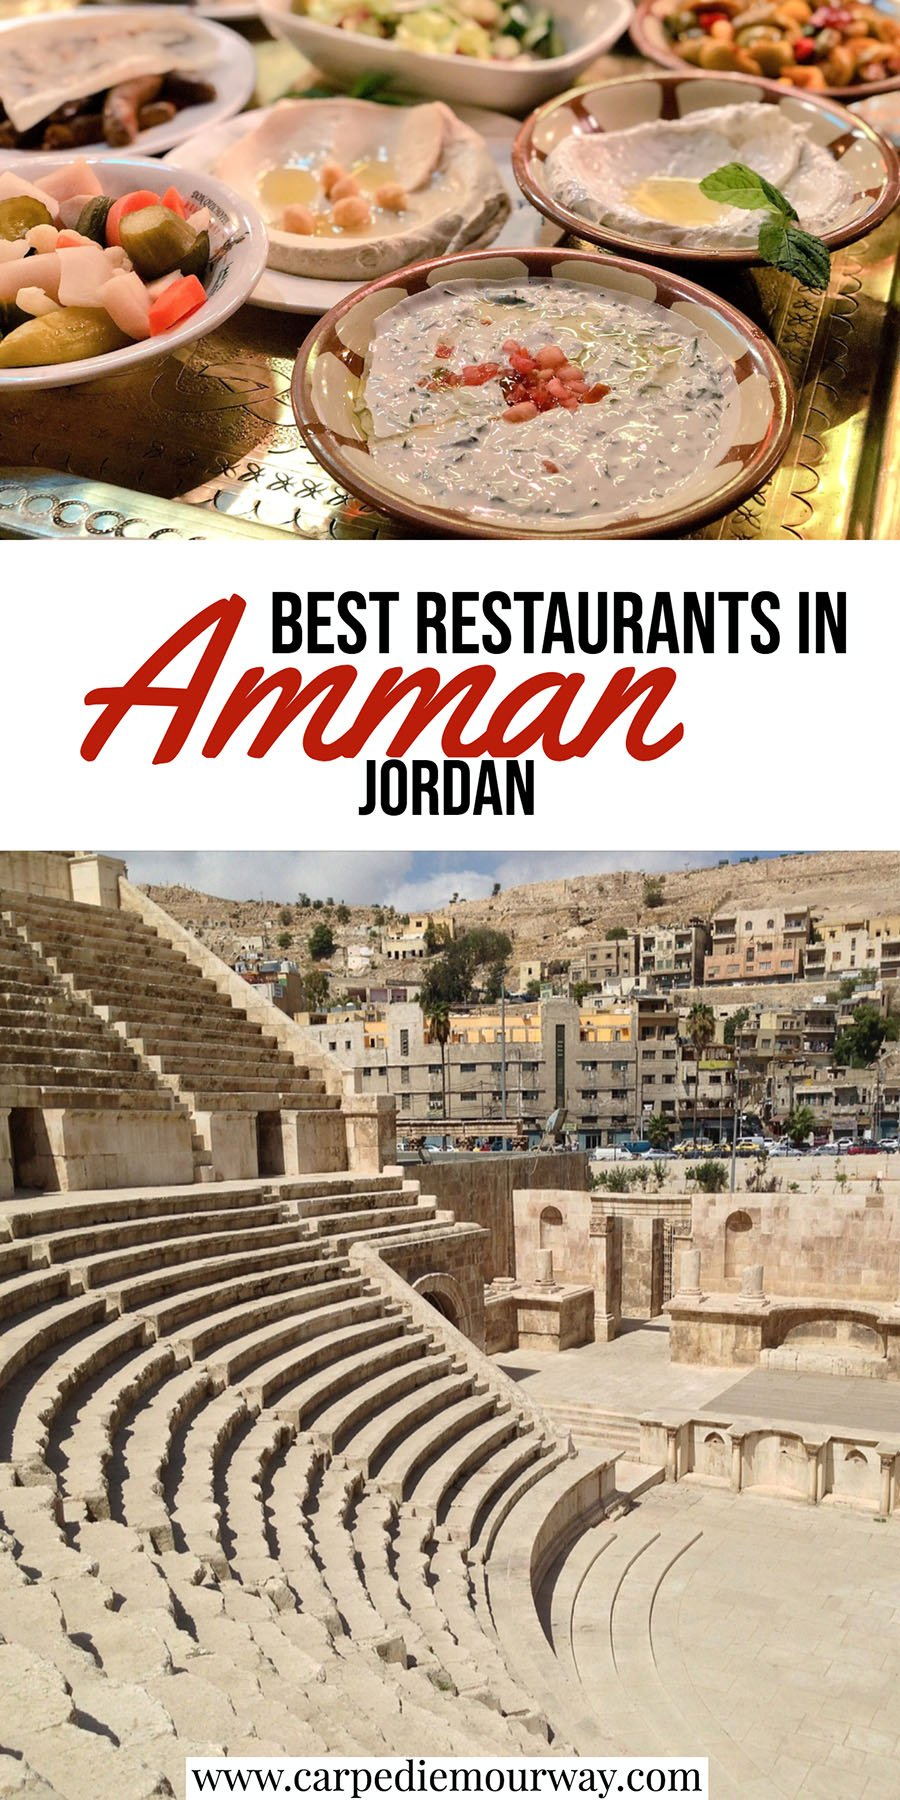 Best restaurants in Amman Jordan